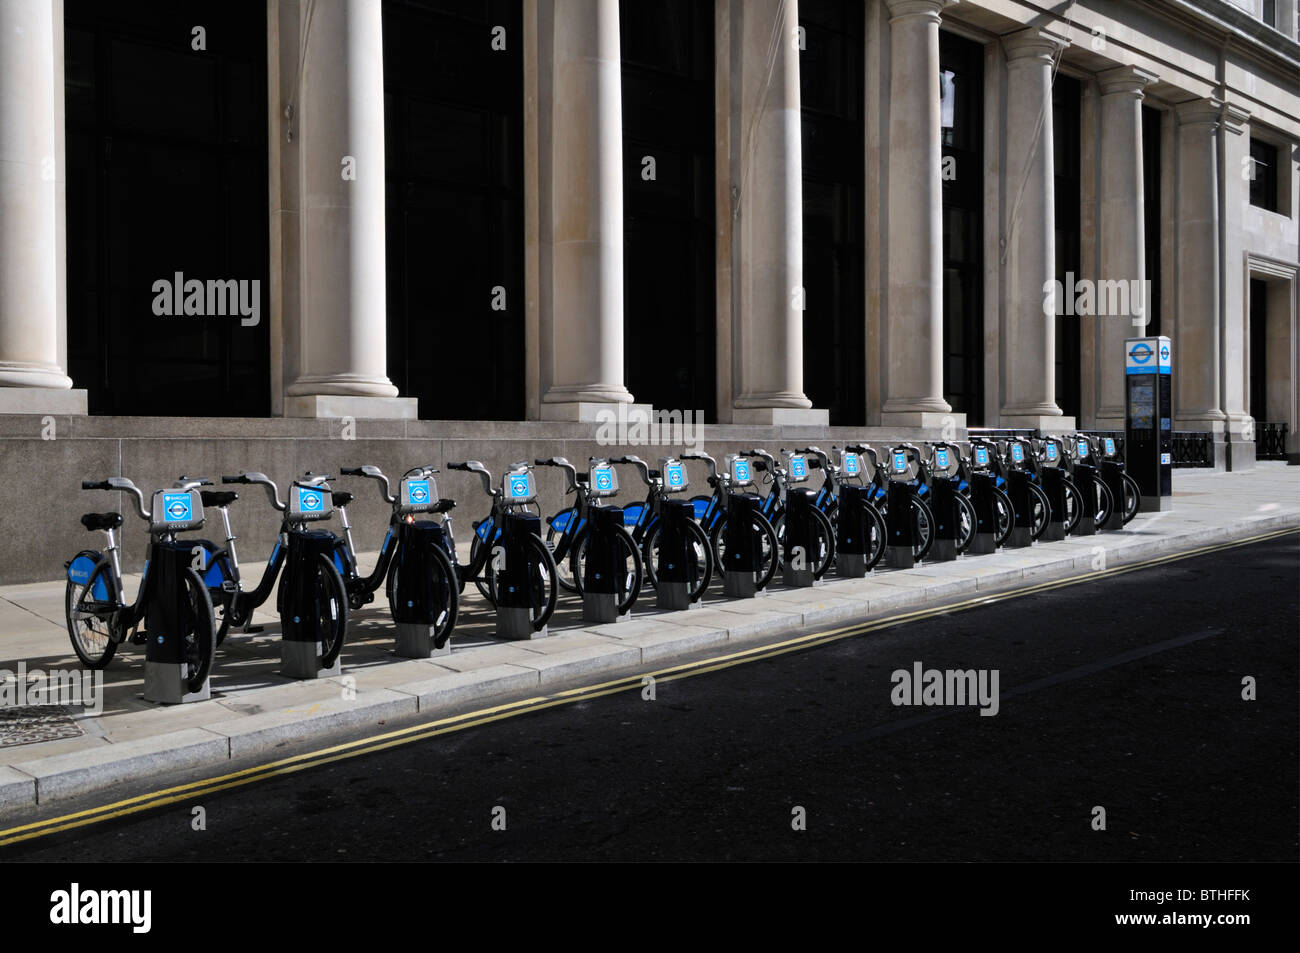 Row of bicycles at a docking point, Barclays TFL Cycle Hire Scheme, London, United Kingdom - Stock Image